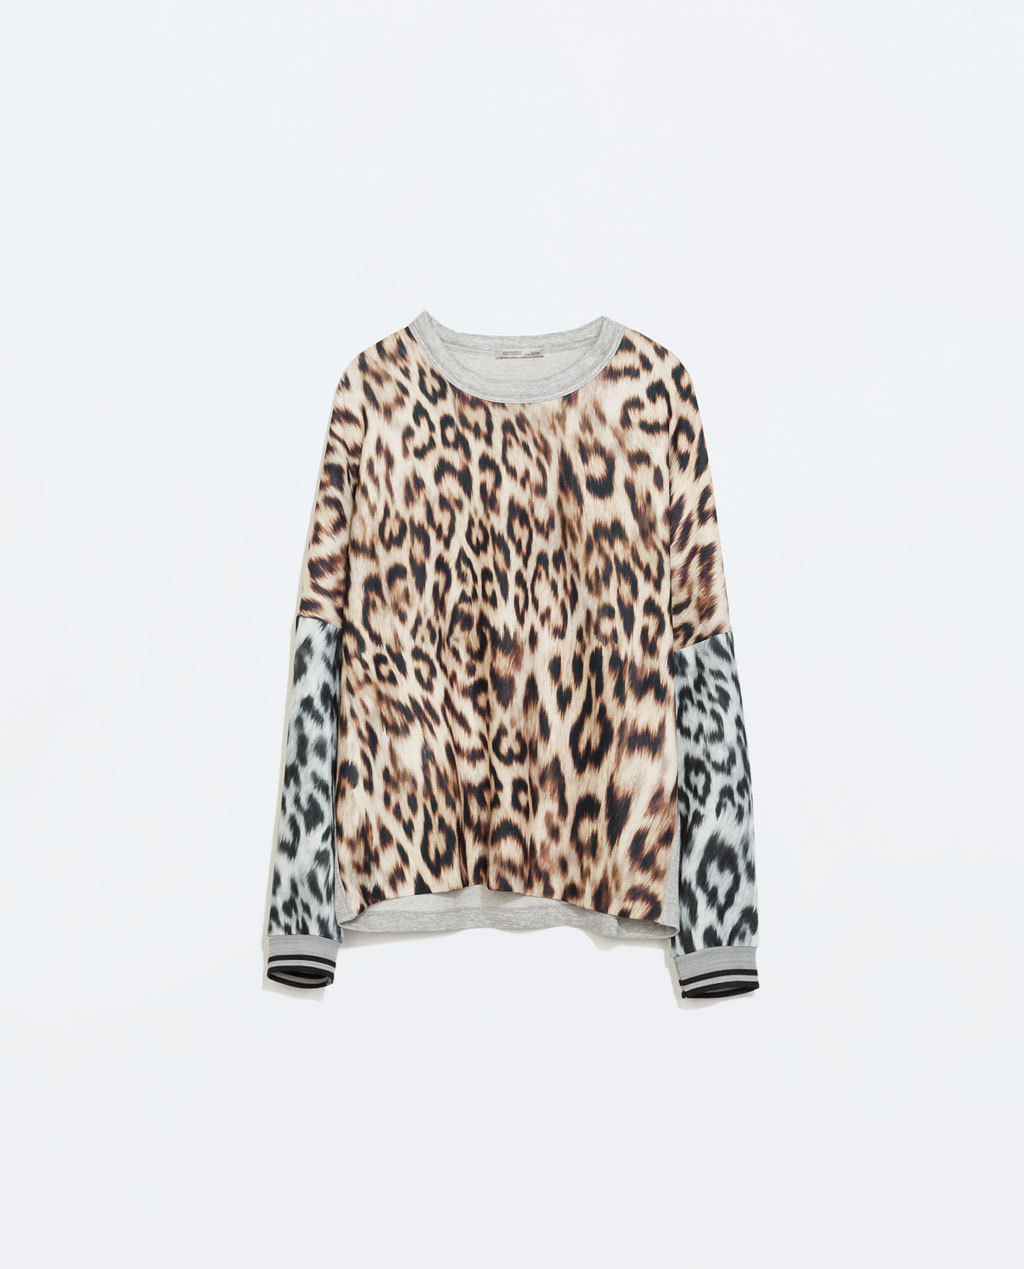 Animal T Shirt - neckline: round neck; sleeve style: dolman/batwing; style: sweat top; secondary colour: chocolate brown; predominant colour: light grey; occasions: casual, creative work; length: standard; fibres: polyester/polyamide - 100%; fit: loose; sleeve length: long sleeve; pattern type: fabric; pattern: animal print; texture group: jersey - stretchy/drapey; trends: zesty shades; season: a/w 2014; pattern size: big & busy (top); embellishment: contrast fabric; embellishment location: back